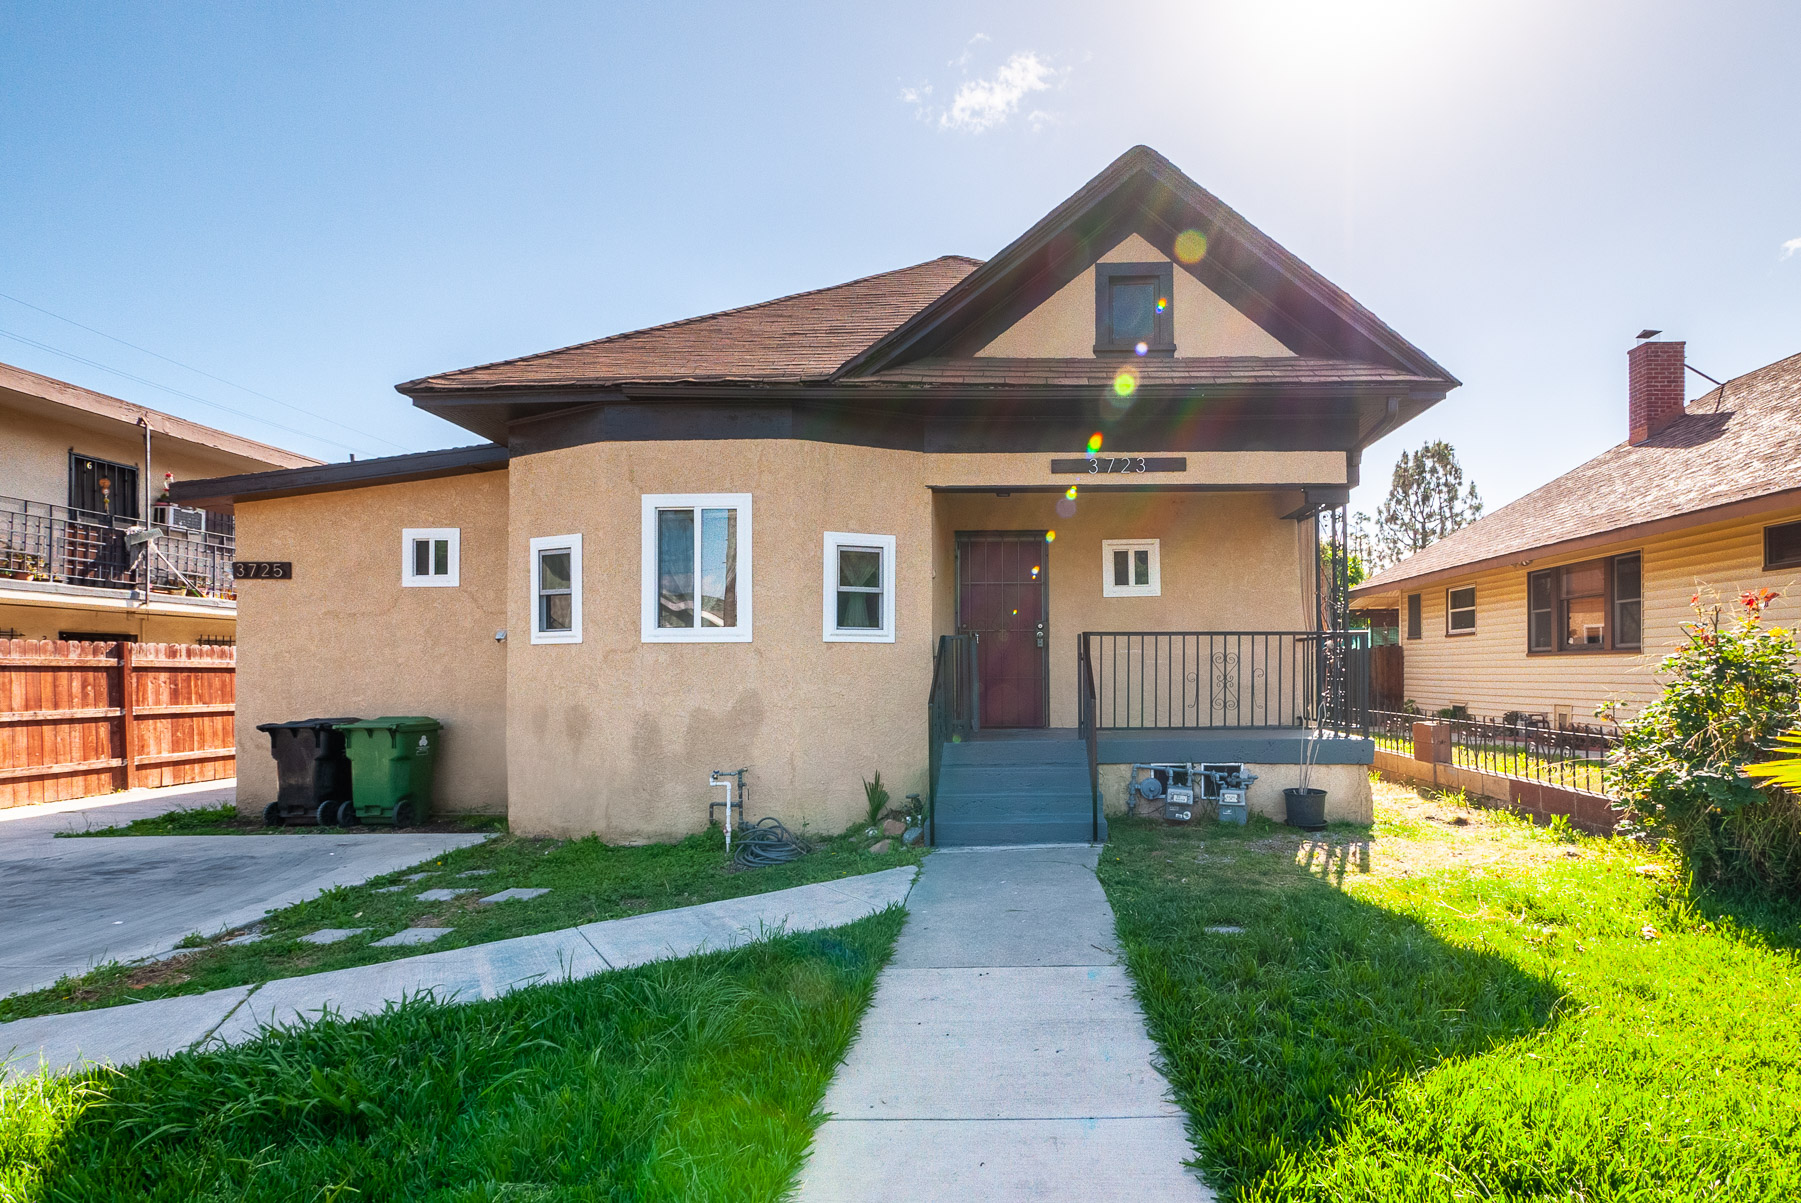 SPACIOUS RENOVATED 3 BED DUPLEX | MINUTES FROM HIGHLAND PARK | FRONT PORCH AND FENCED YARD | IN-UNIT LAUNDRY